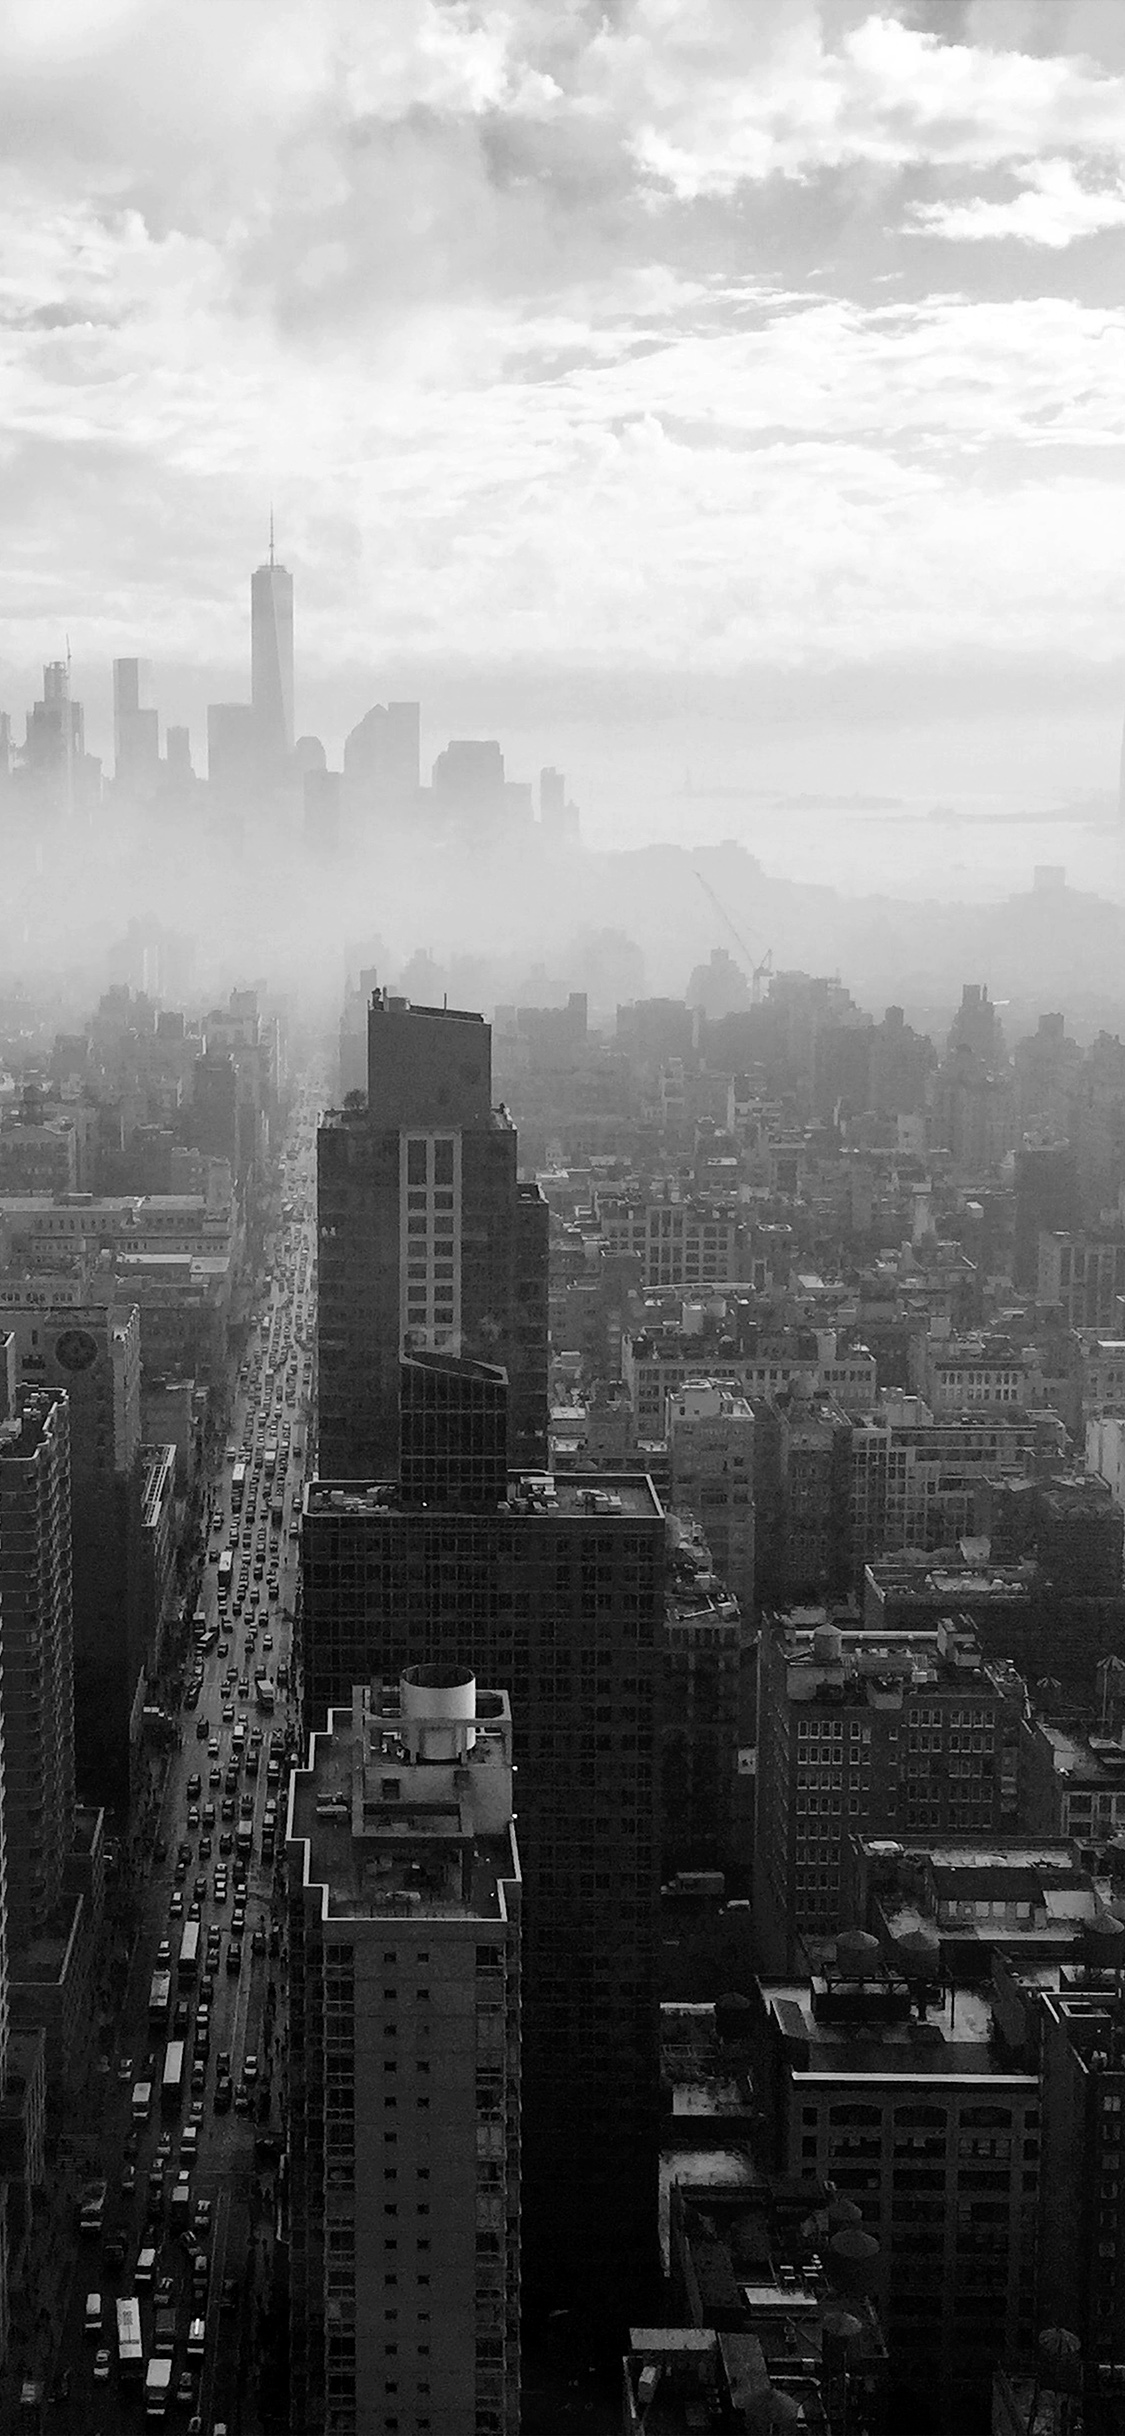 Iphone11papers Com Iphone11 Wallpaper No67 City Builiding Architecture Newyork Nature Bw Dark